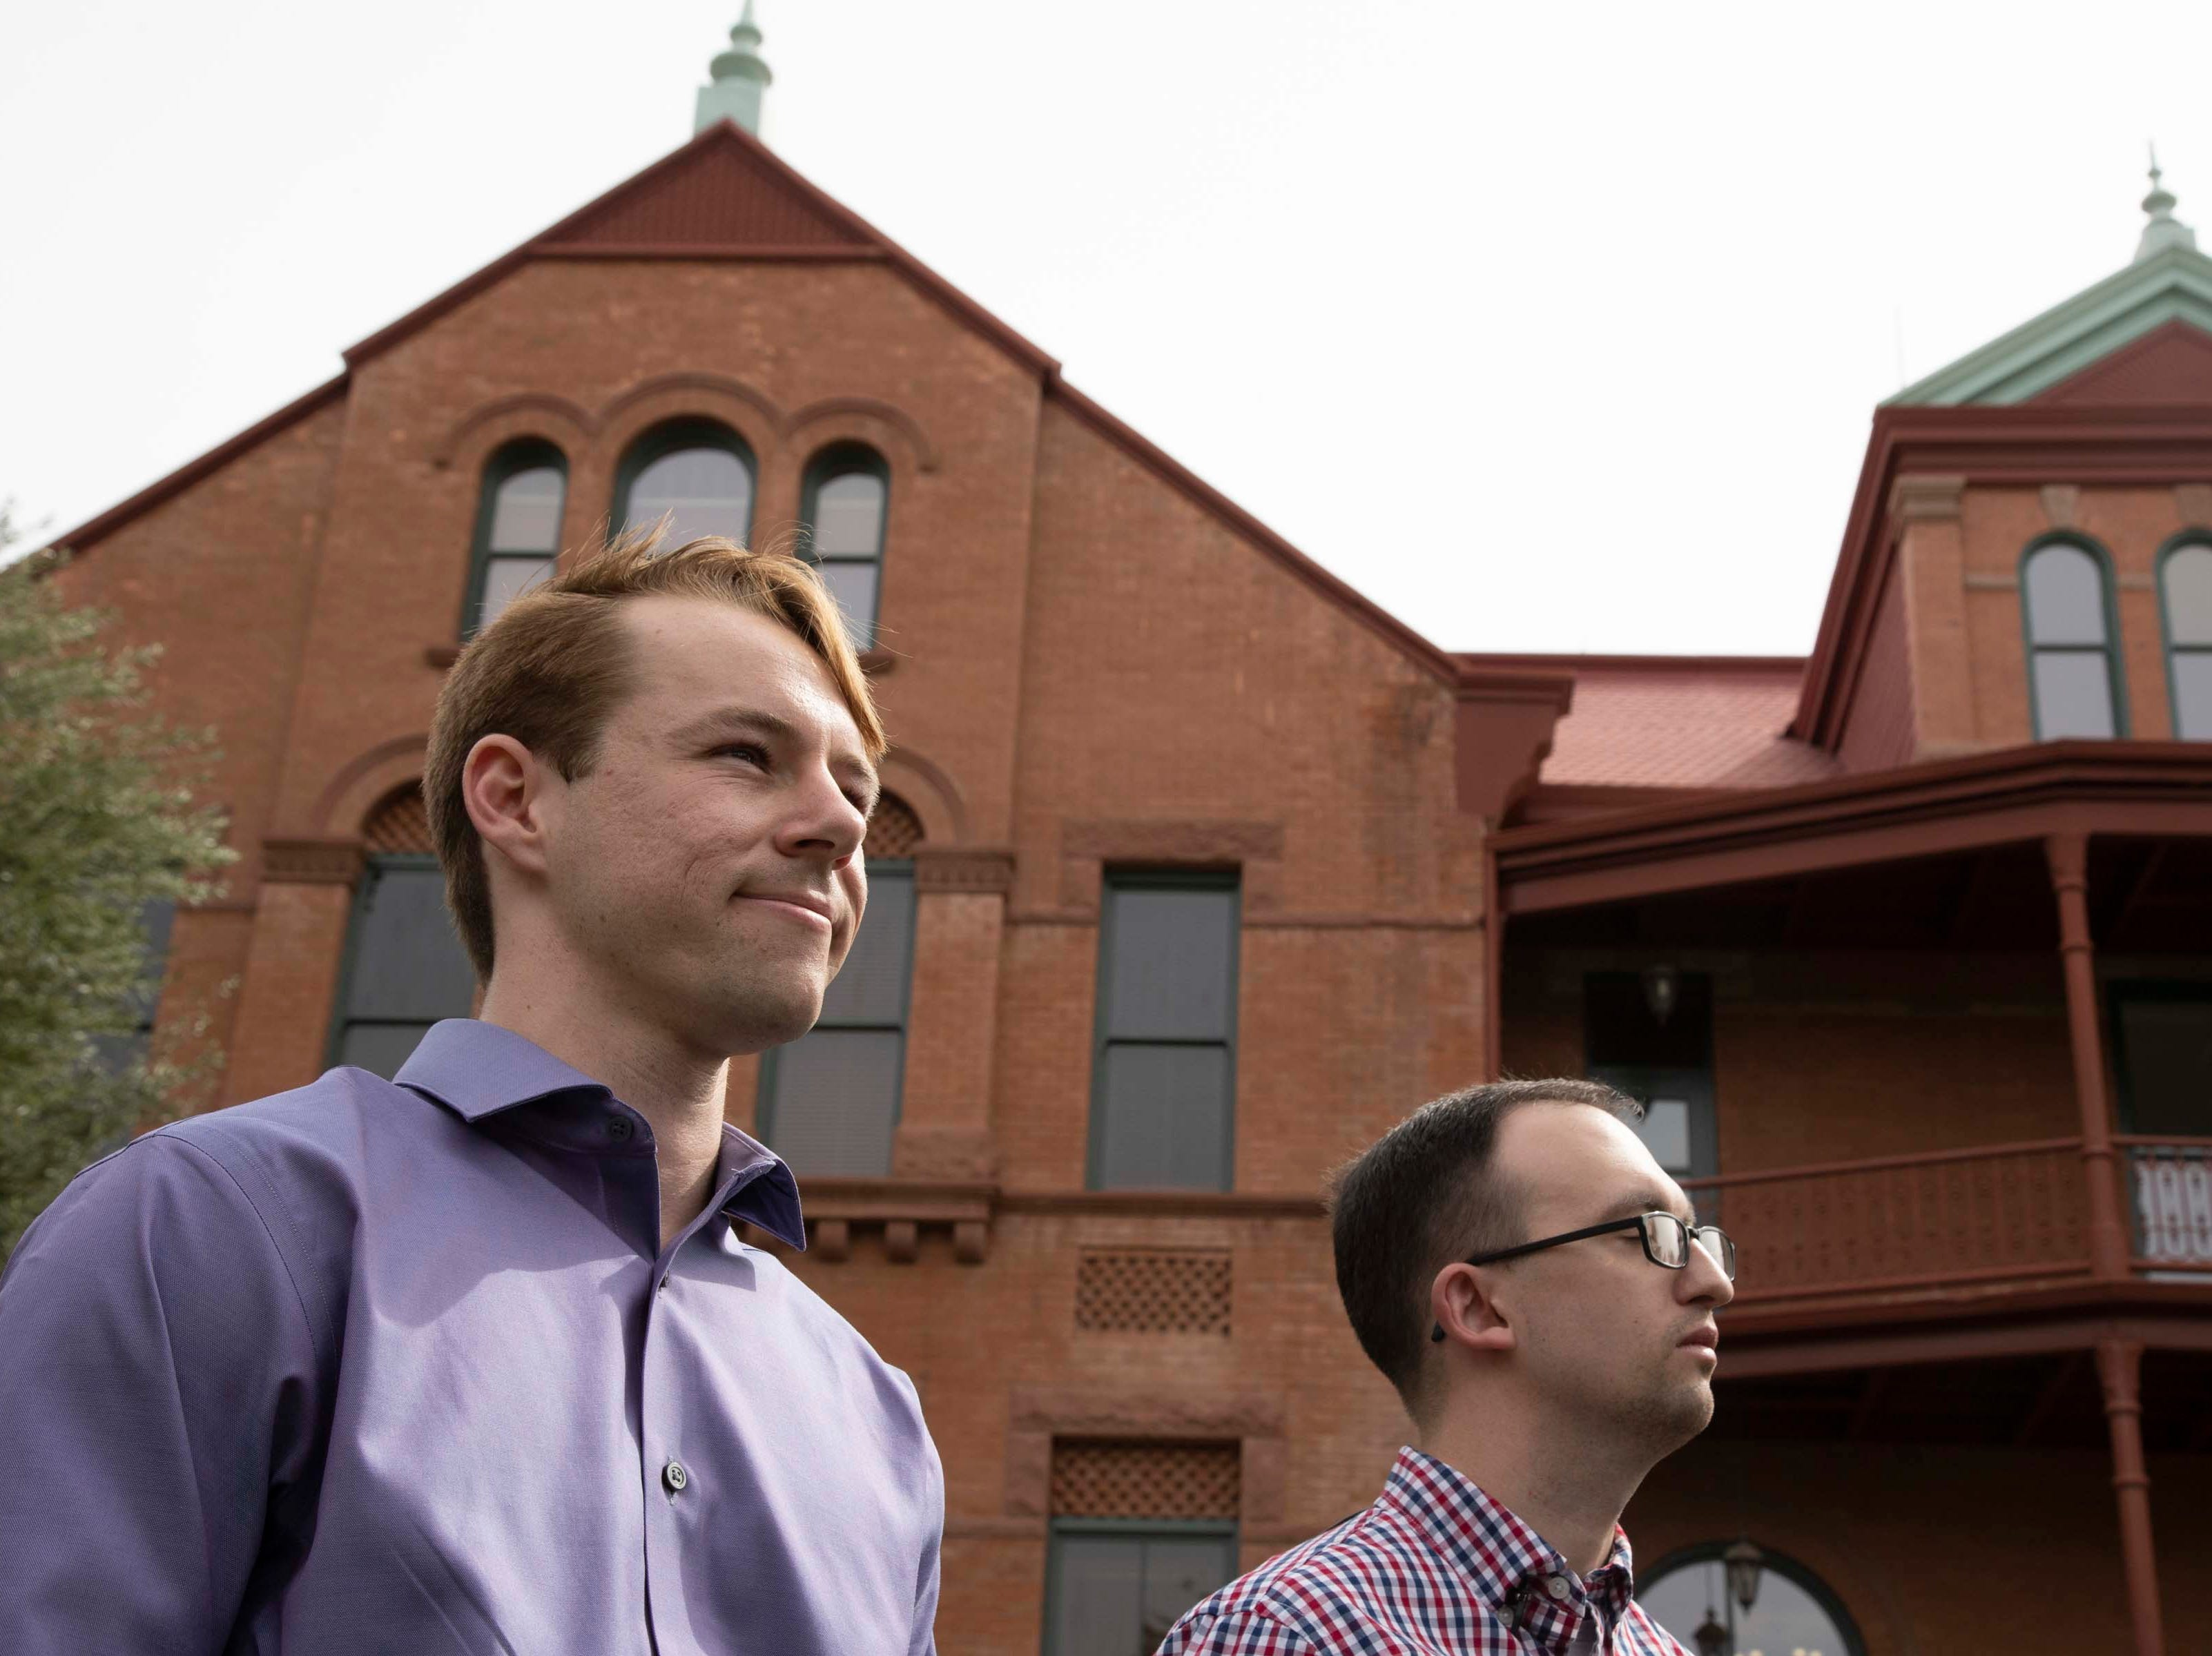 College Republicans United President  Mark Northway (right) and co-founder Kevin Decuyper publicly apologize in front of Old Main at ASU on March 26, 2019.